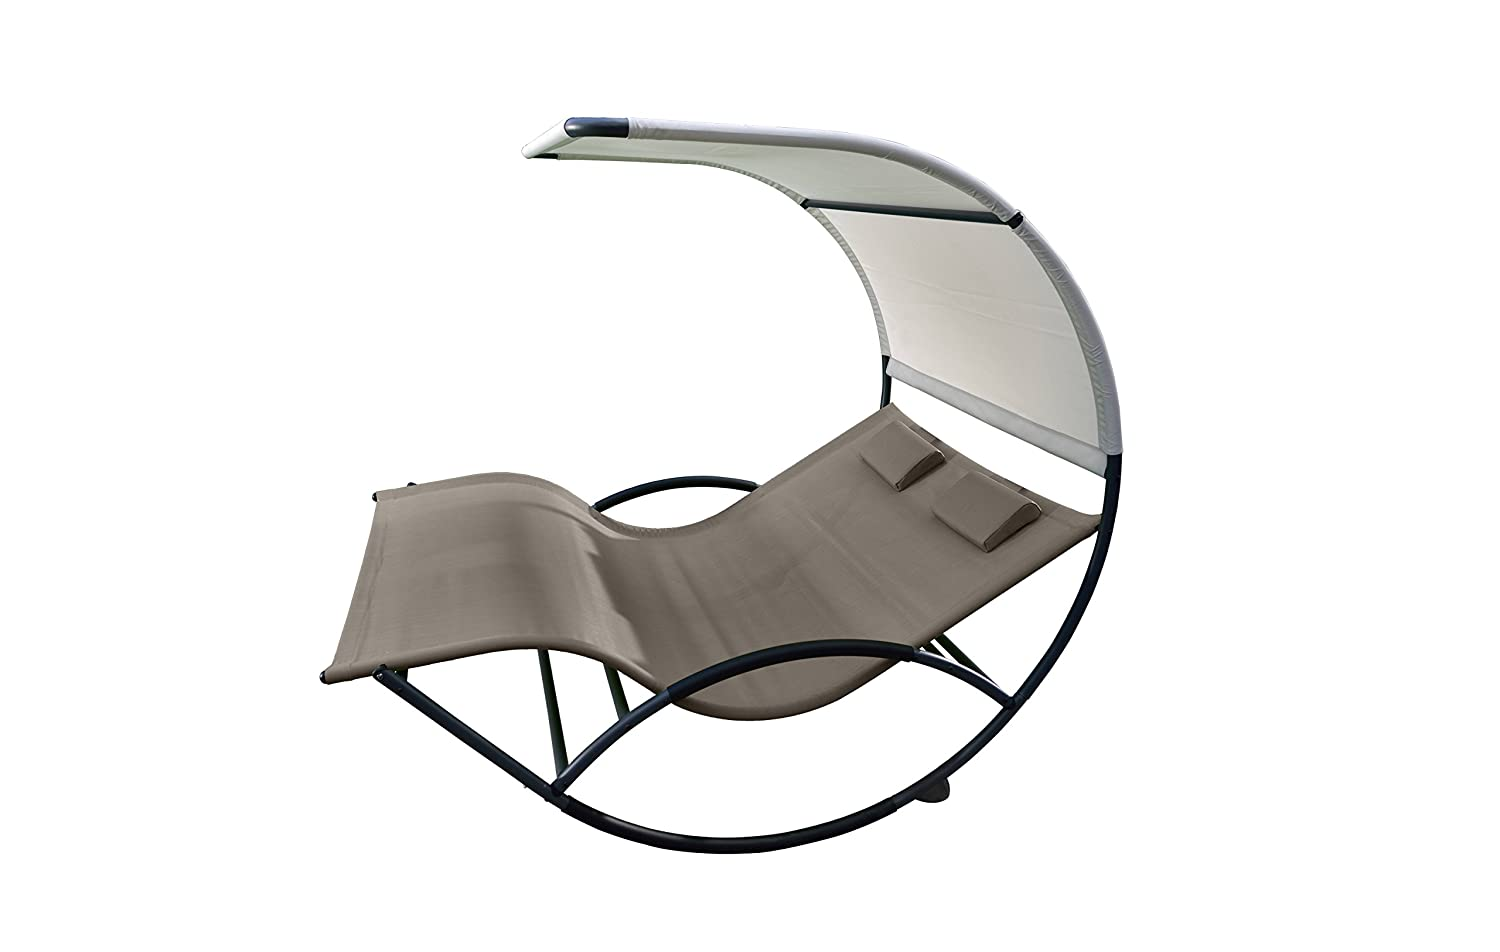 Remarkable Amazon Com Patio Bliss Double Chaise Rocker Two Person Pdpeps Interior Chair Design Pdpepsorg